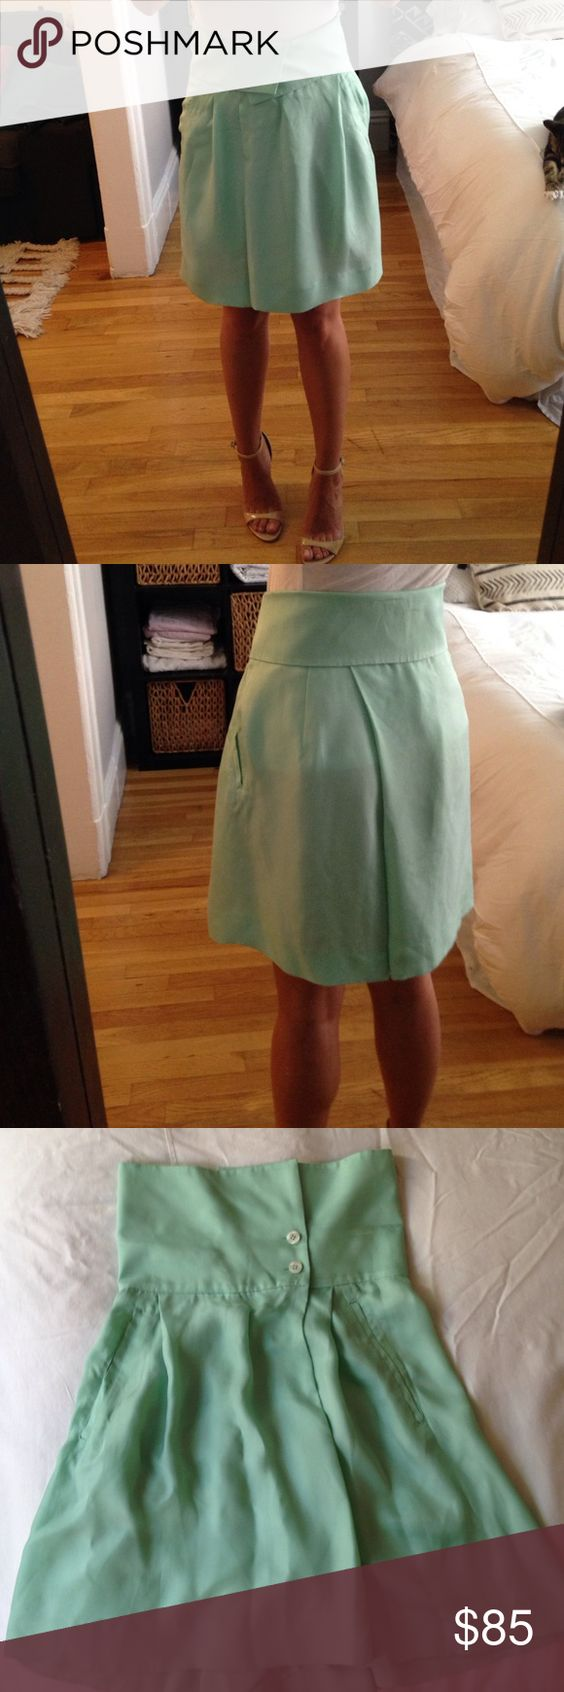 REISS Mint green silk pleated Skort These are actually shorts that are cut like a pleated a-line skirt. There is a zipper + button front enclosure, followed by 2 buttons above the waist that create an origami like fold when you fold it over. Measures 18inches in length from top button/fold to hem. No stains or tears- front pockets haven't even been opened! Reiss Shorts Skorts